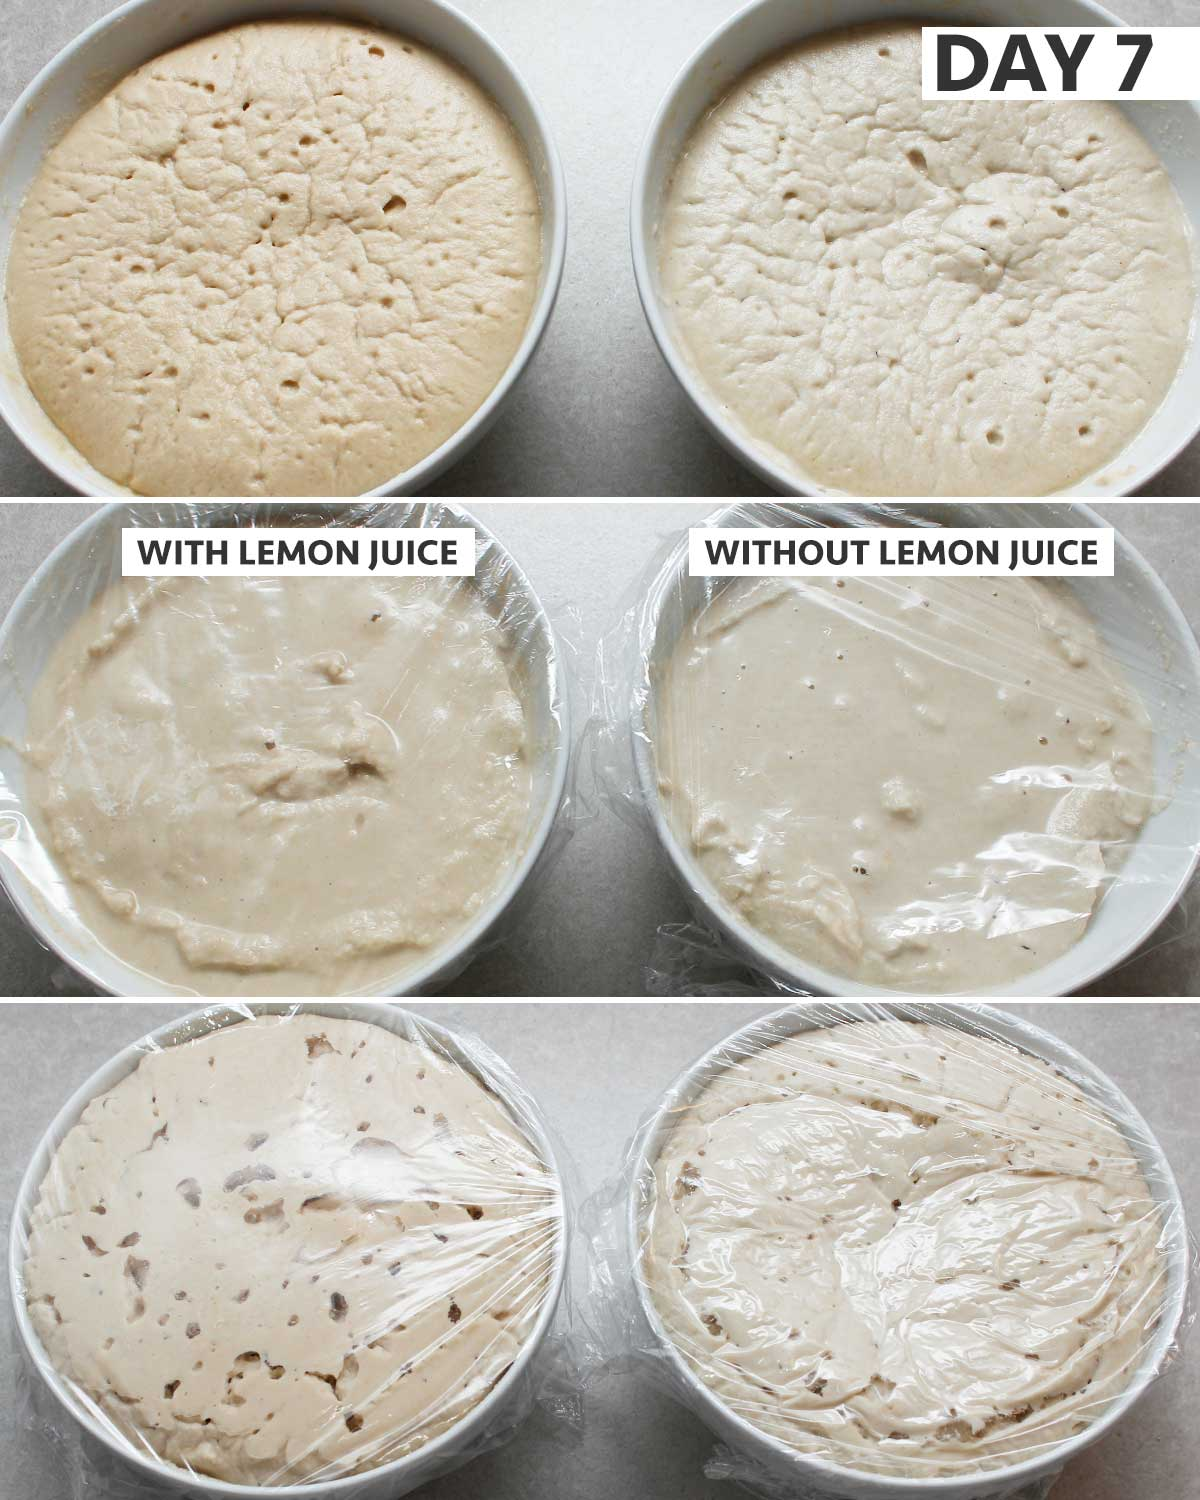 Day 7 of 8: gluten-free sourdough starter step-by-step process